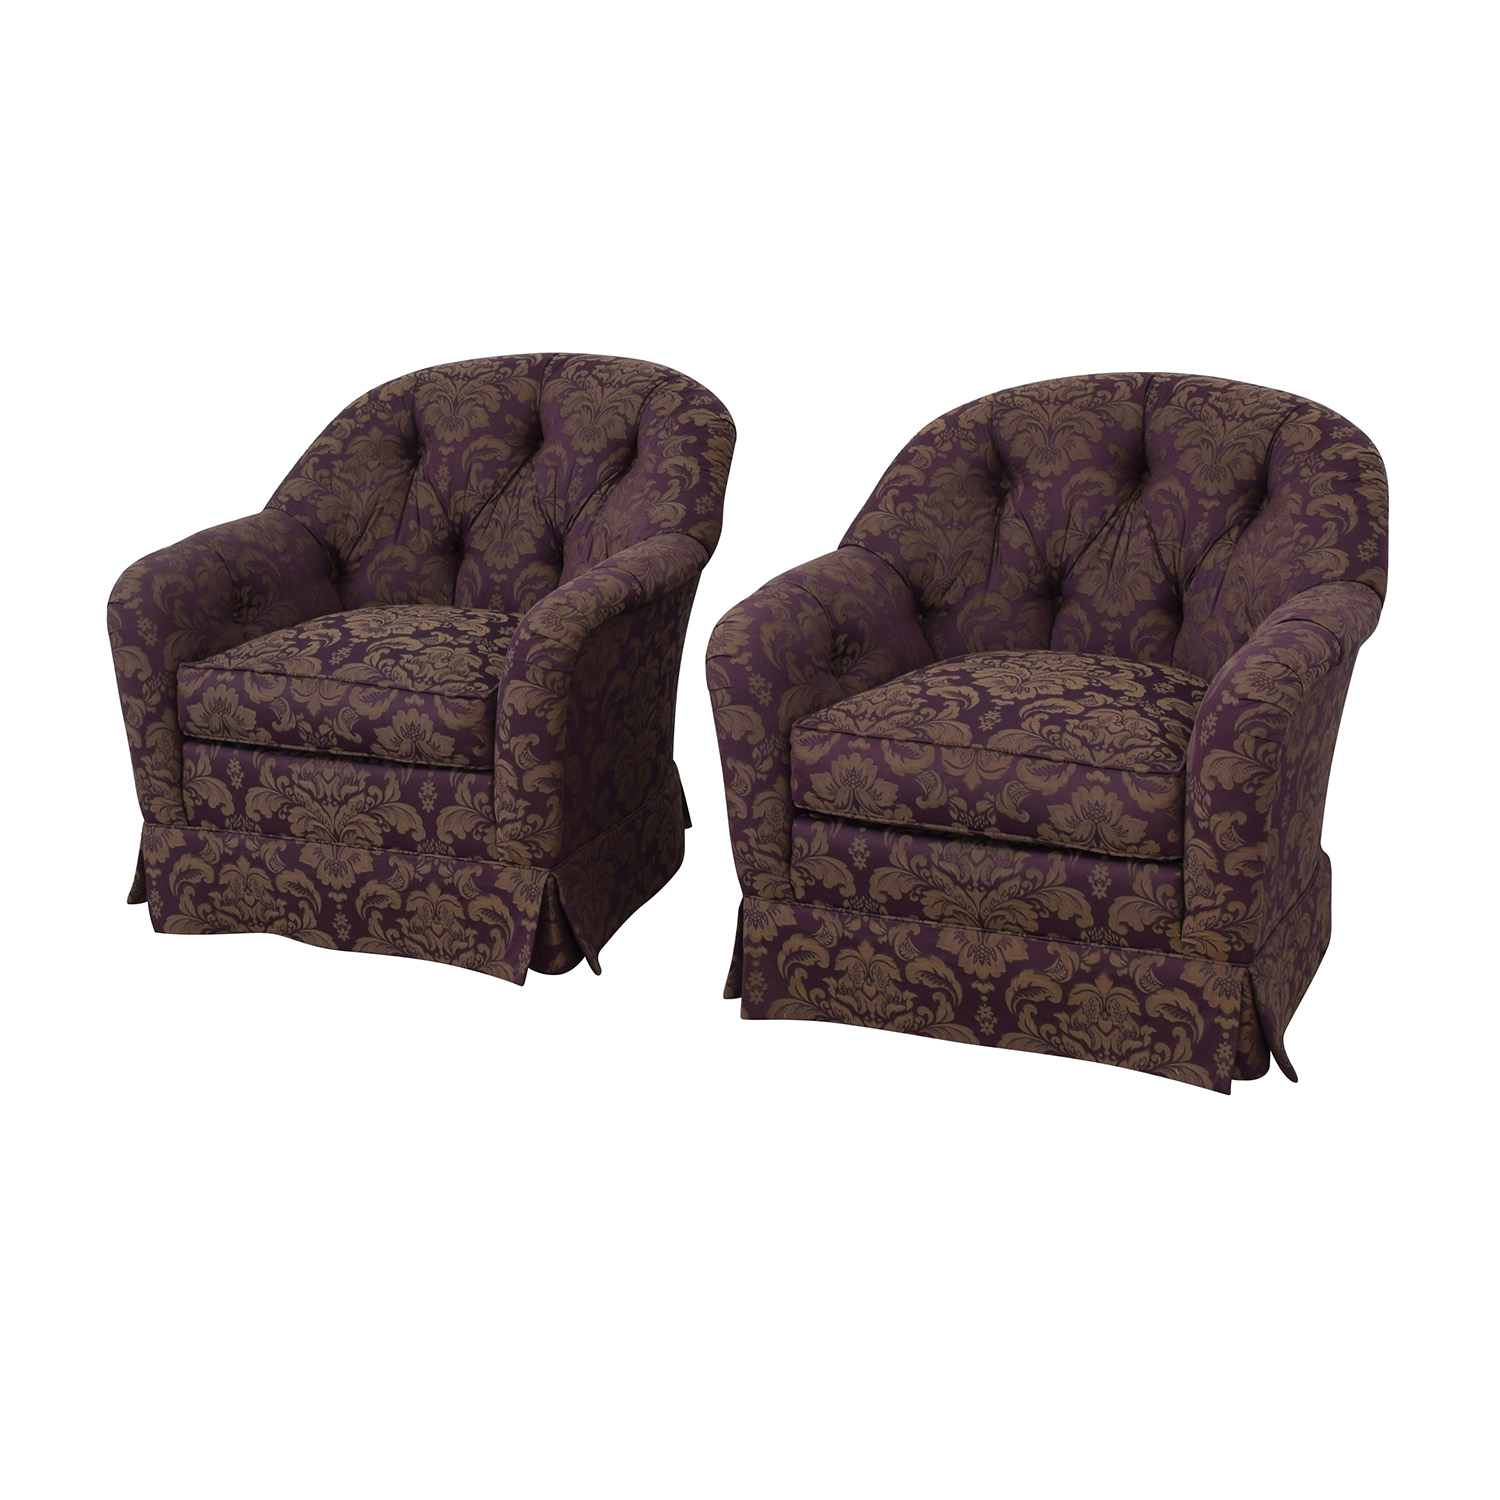 Patterned Swivel Chairs